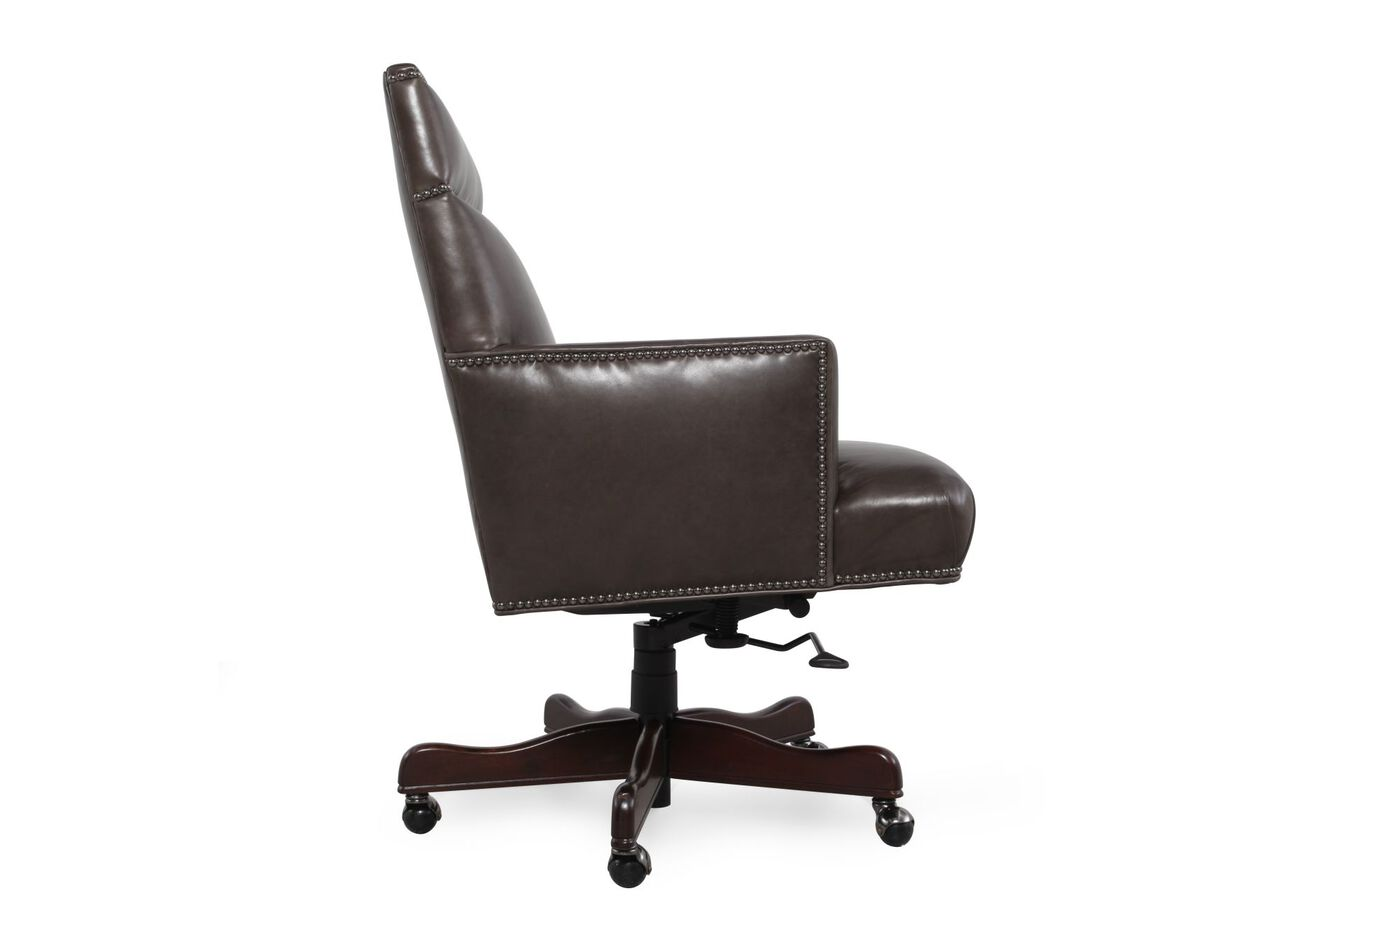 Leather Nailhead Accented Executive Desk Chair in Charcoal Grey ...